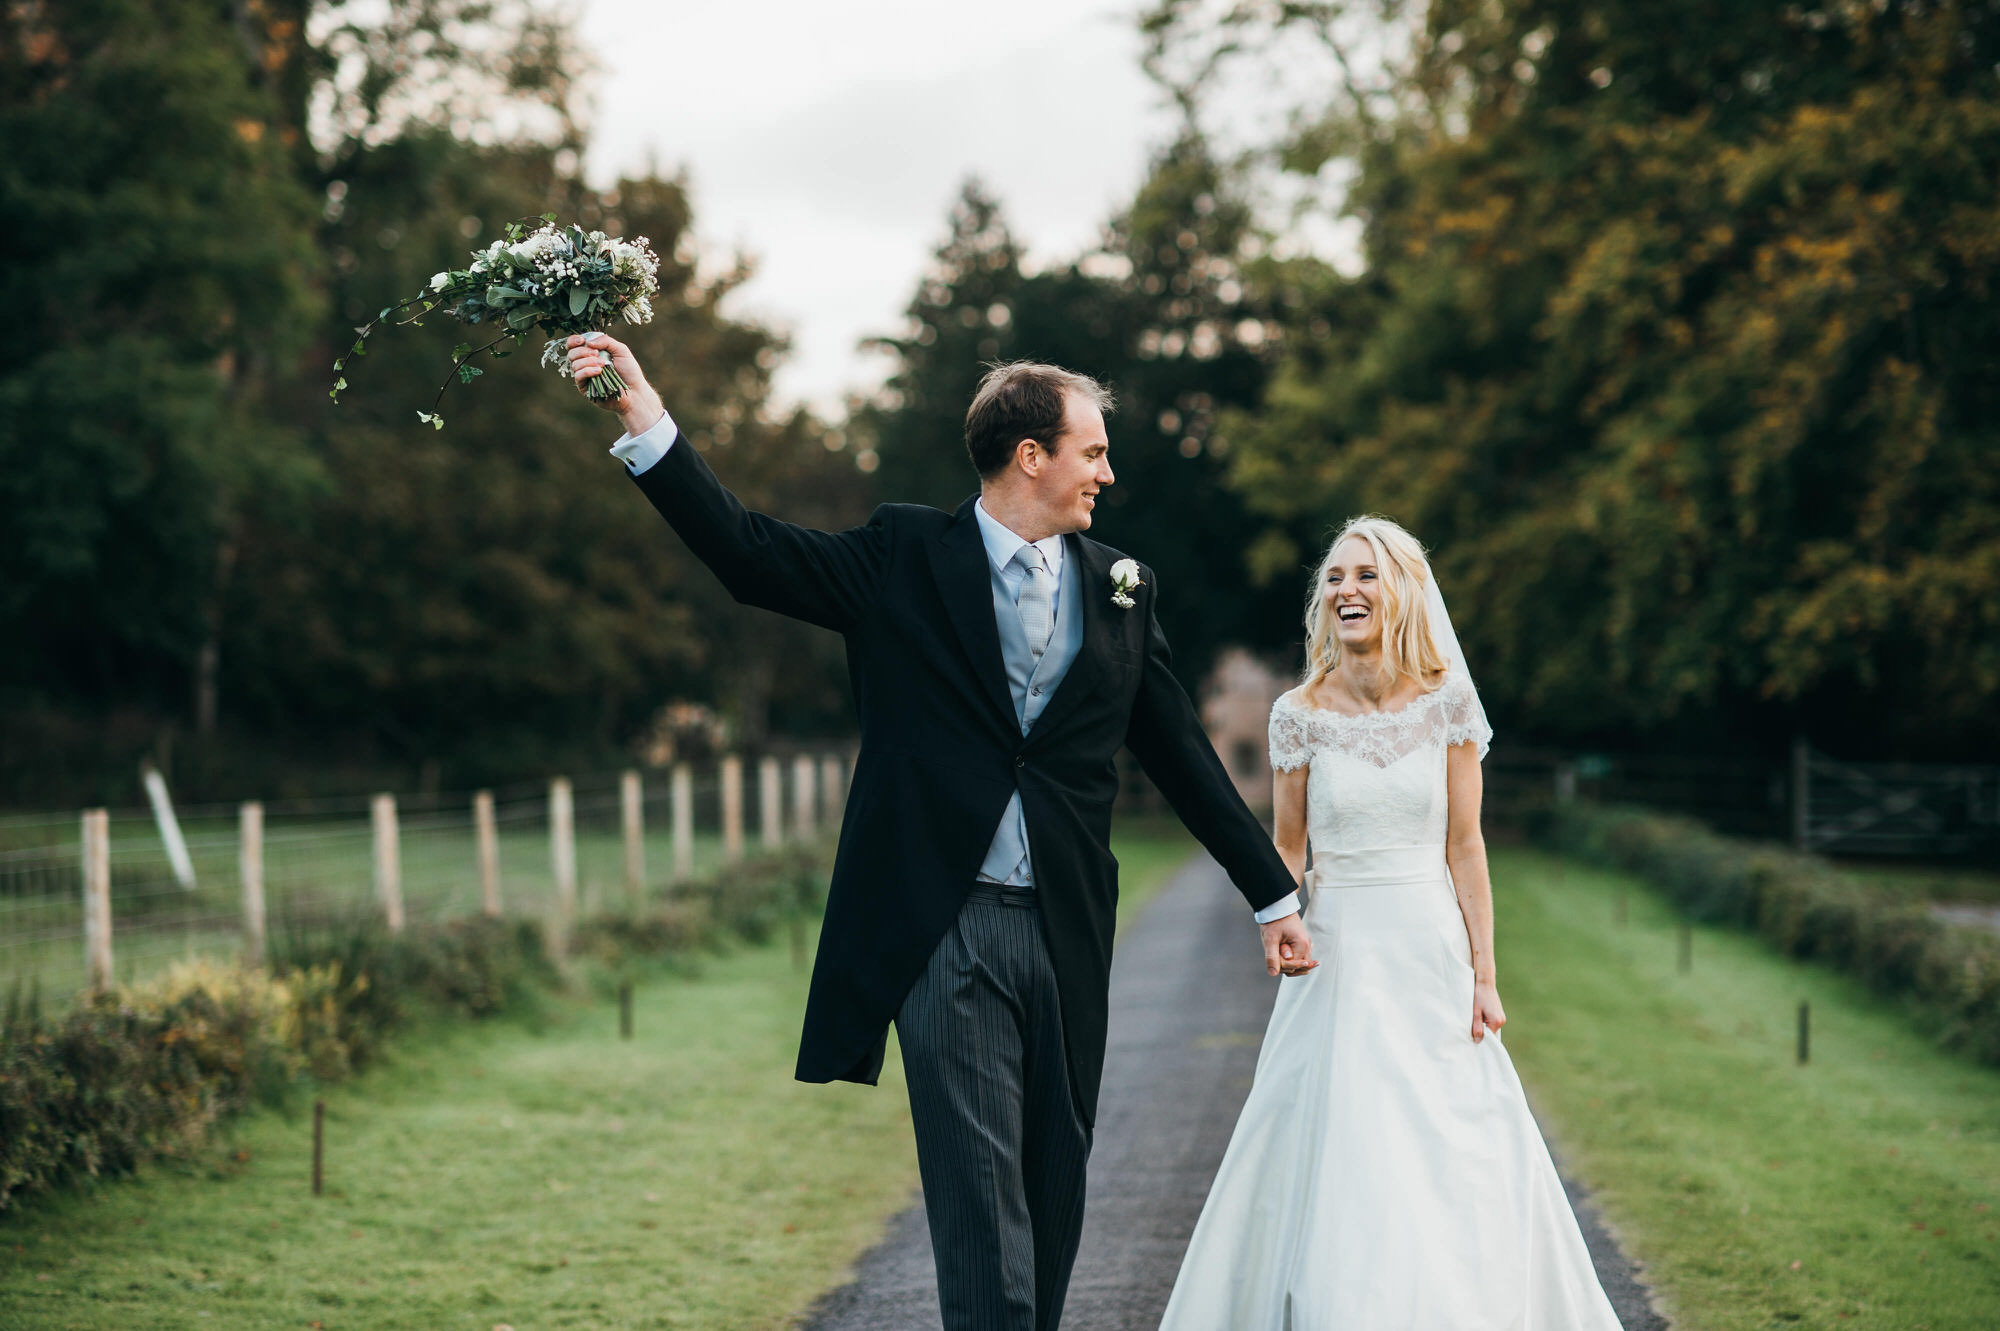 Crowcombe court bride and groom